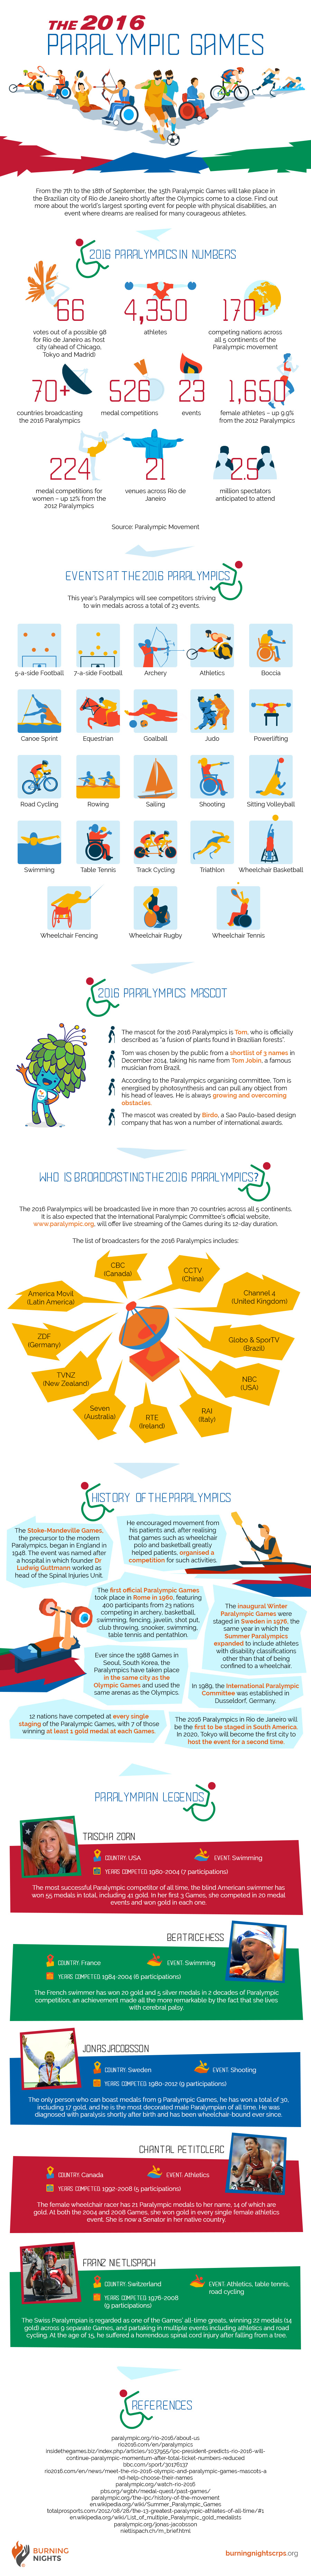 Paralympic-Games_2016_infographic_IG